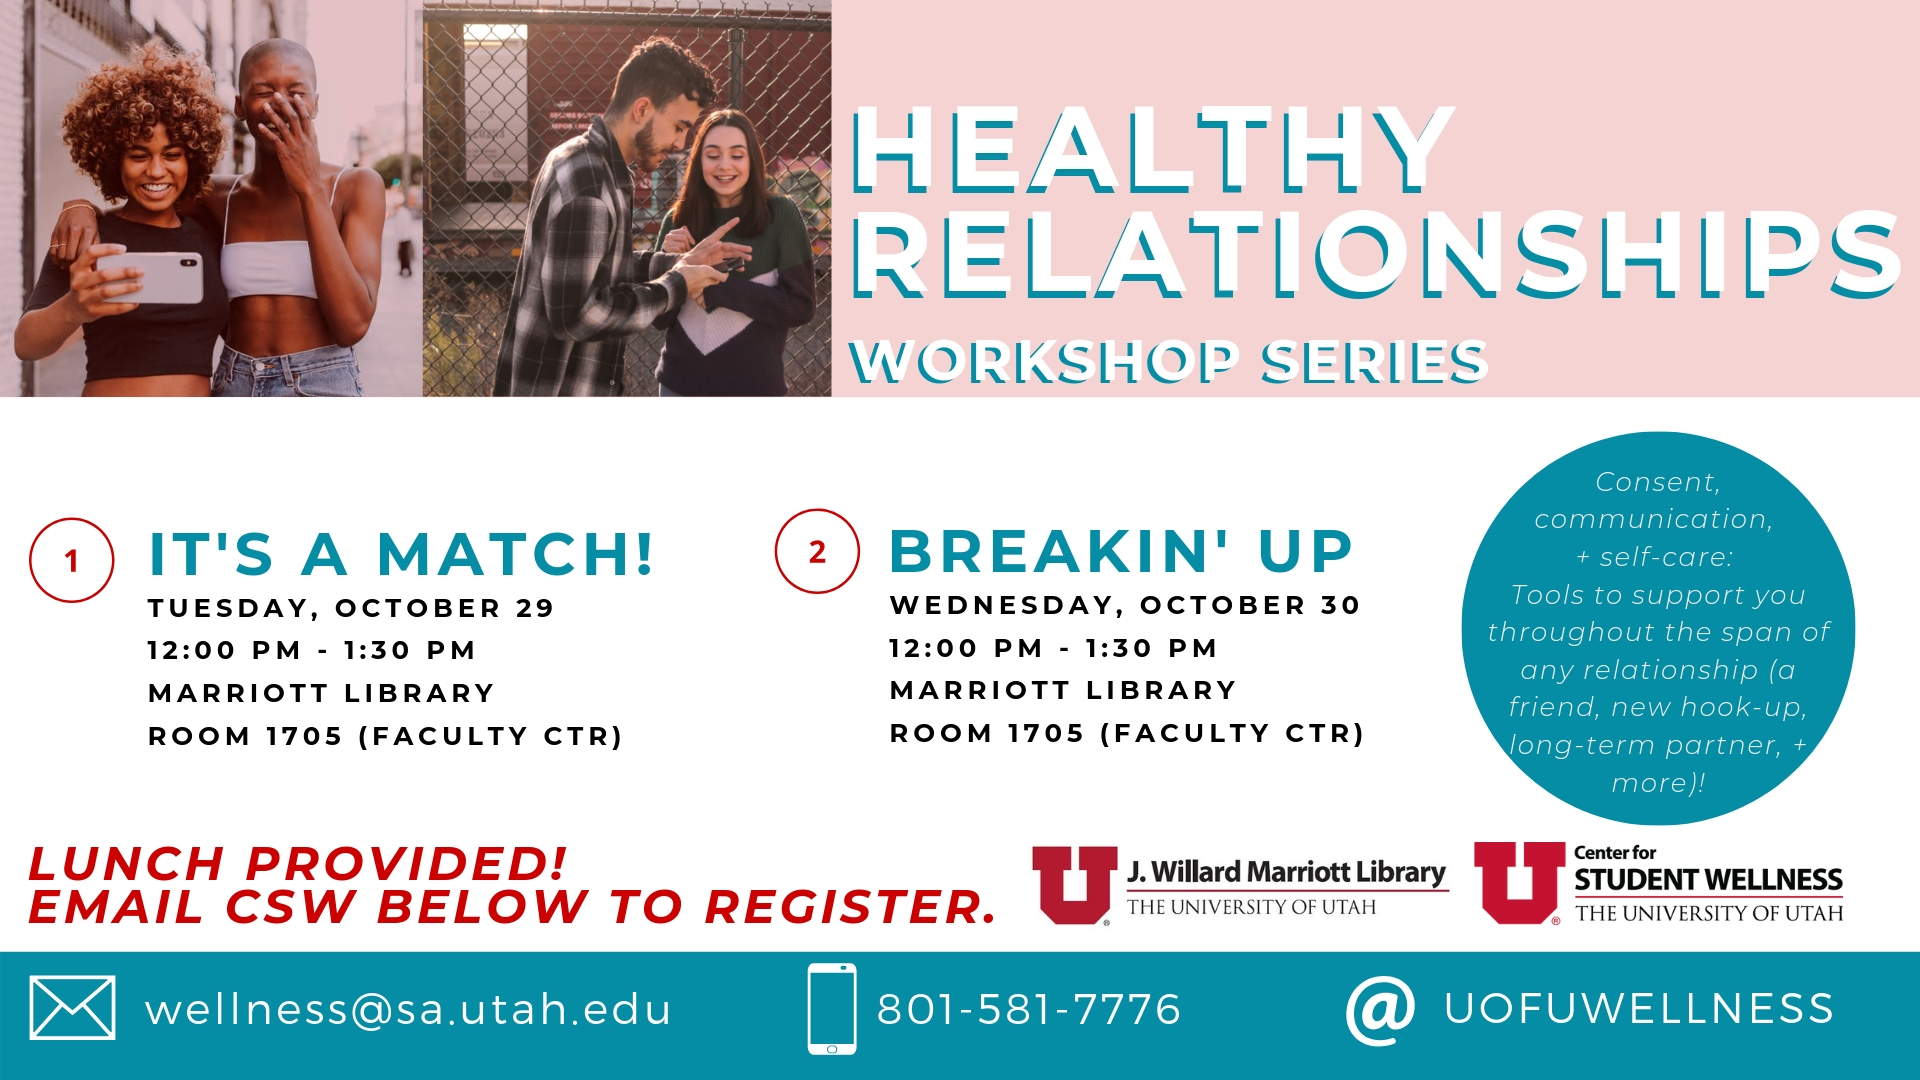 Healthy relationships workshops october 29th and 30th from 12 until 1 30 in the faculty center